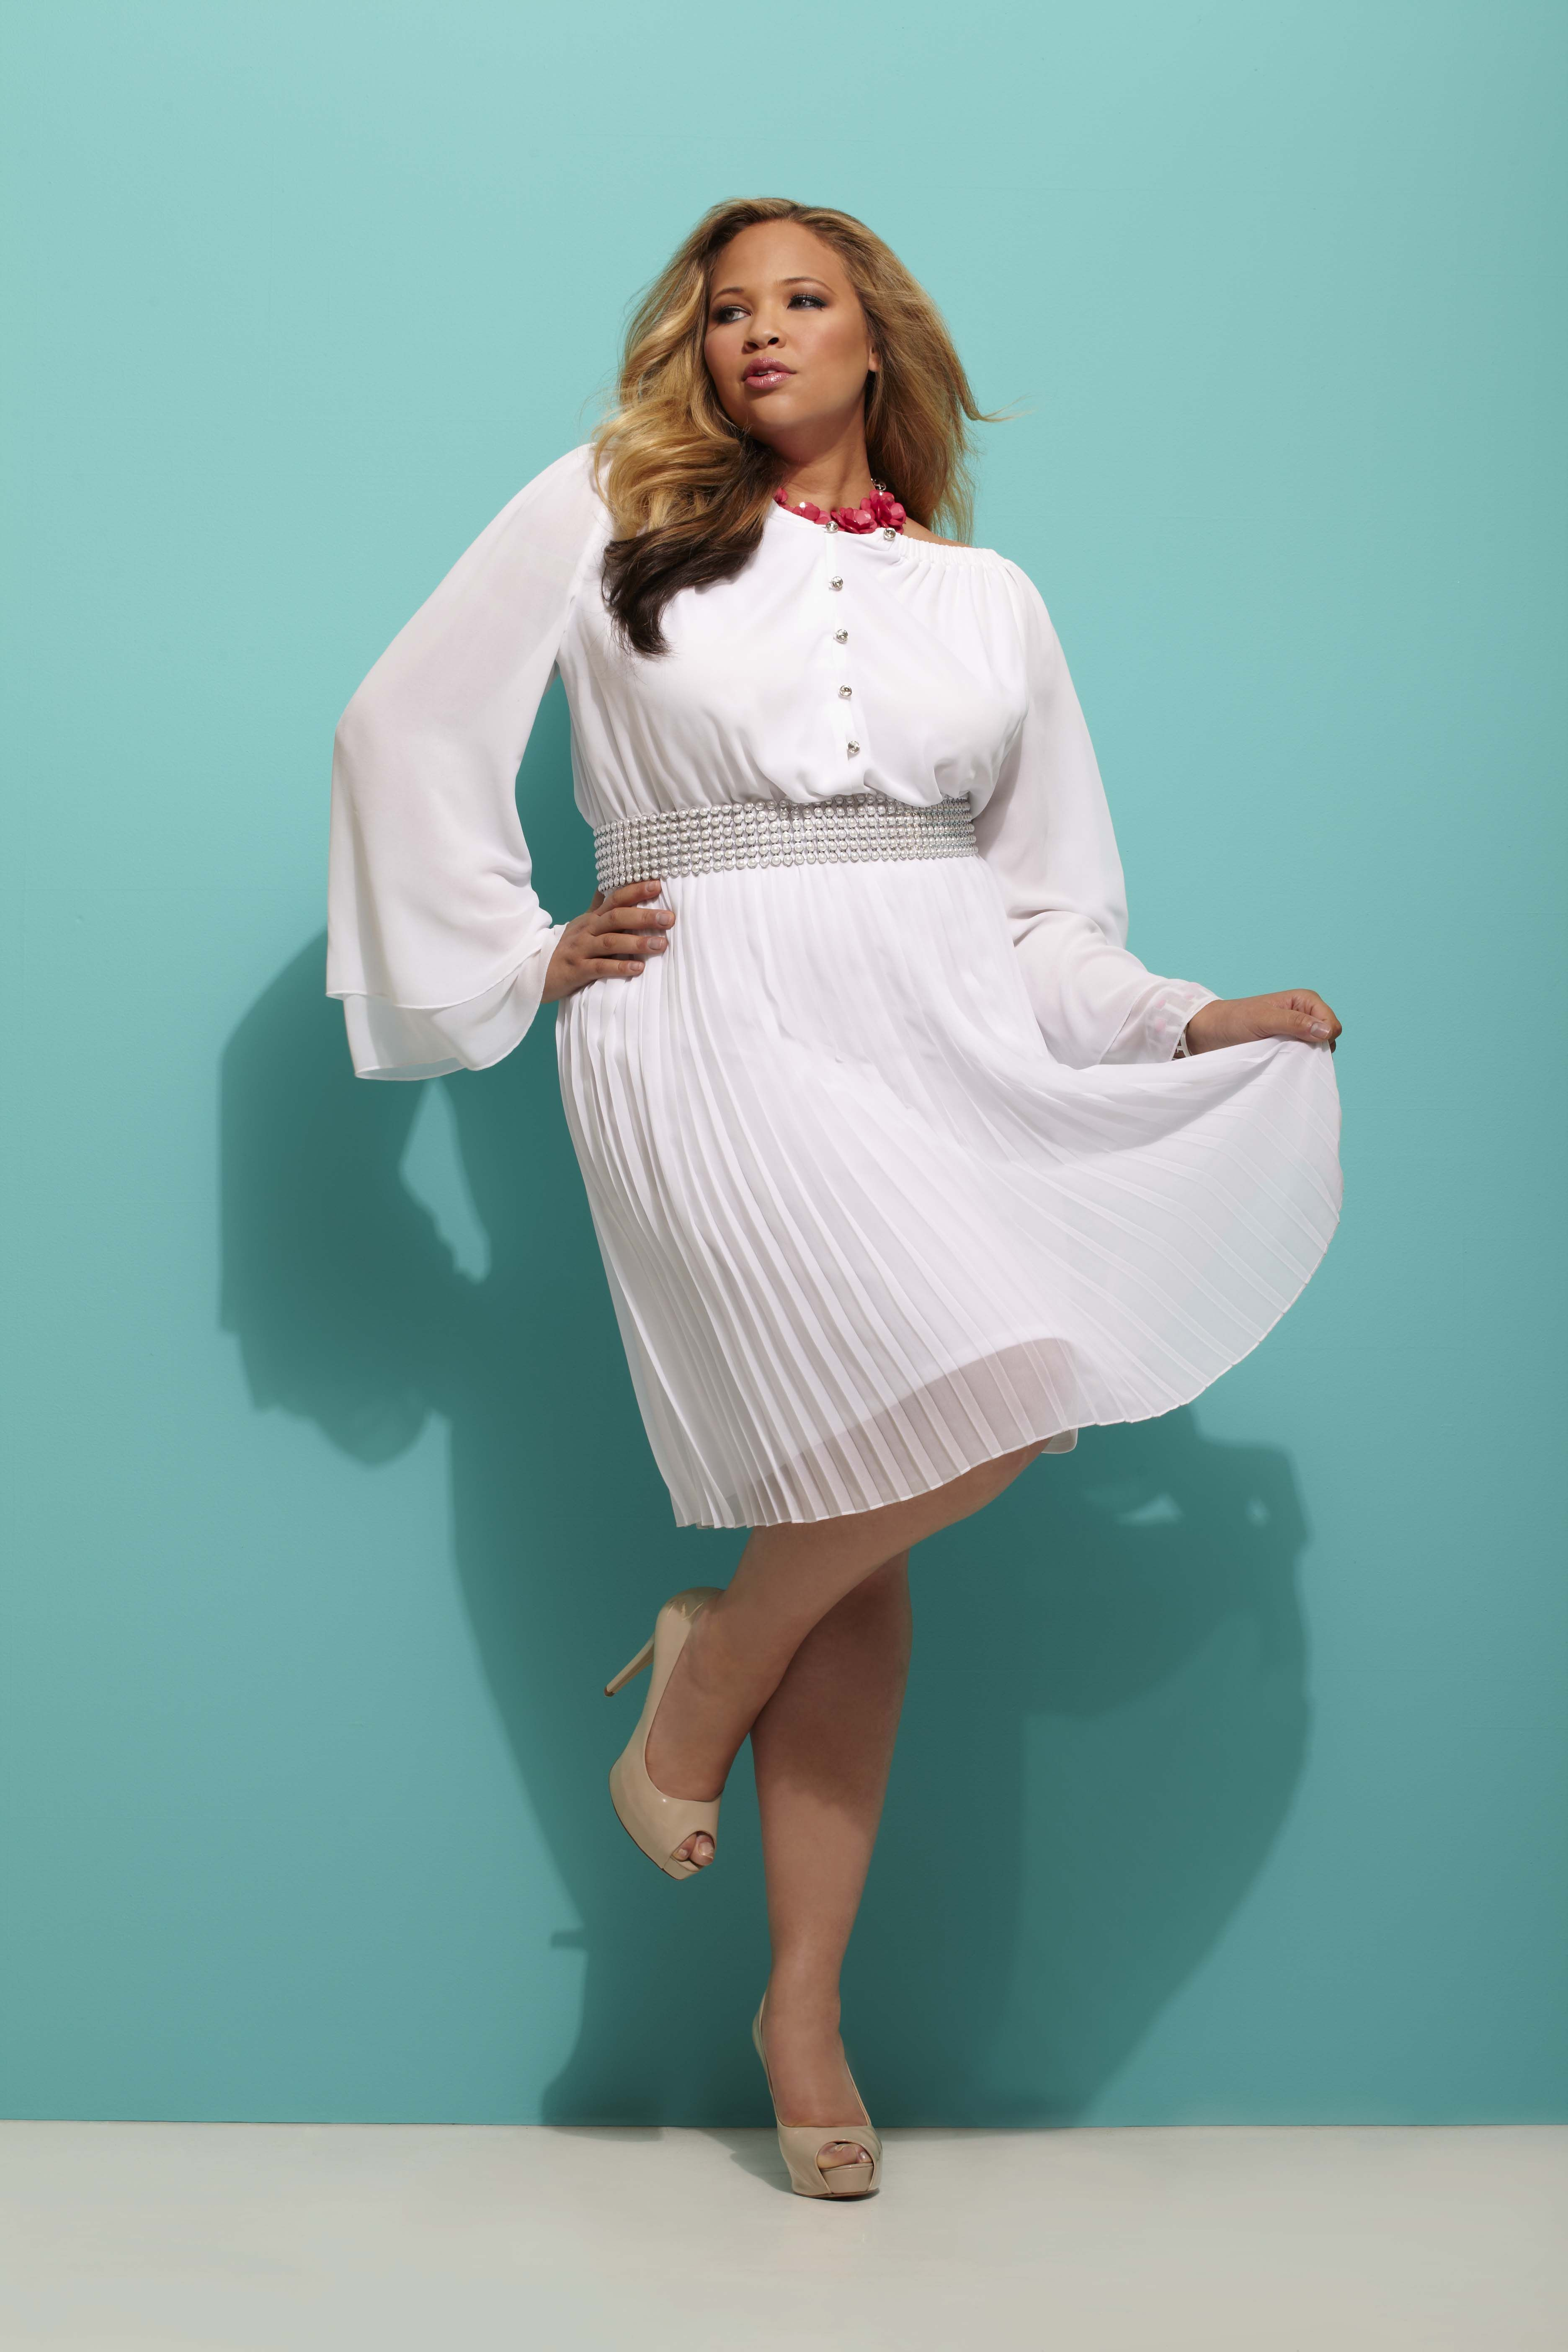 b0fe17a422 Ashley Stewart Model Sarah Flack This dress is to DIE for  WhiteHot ...